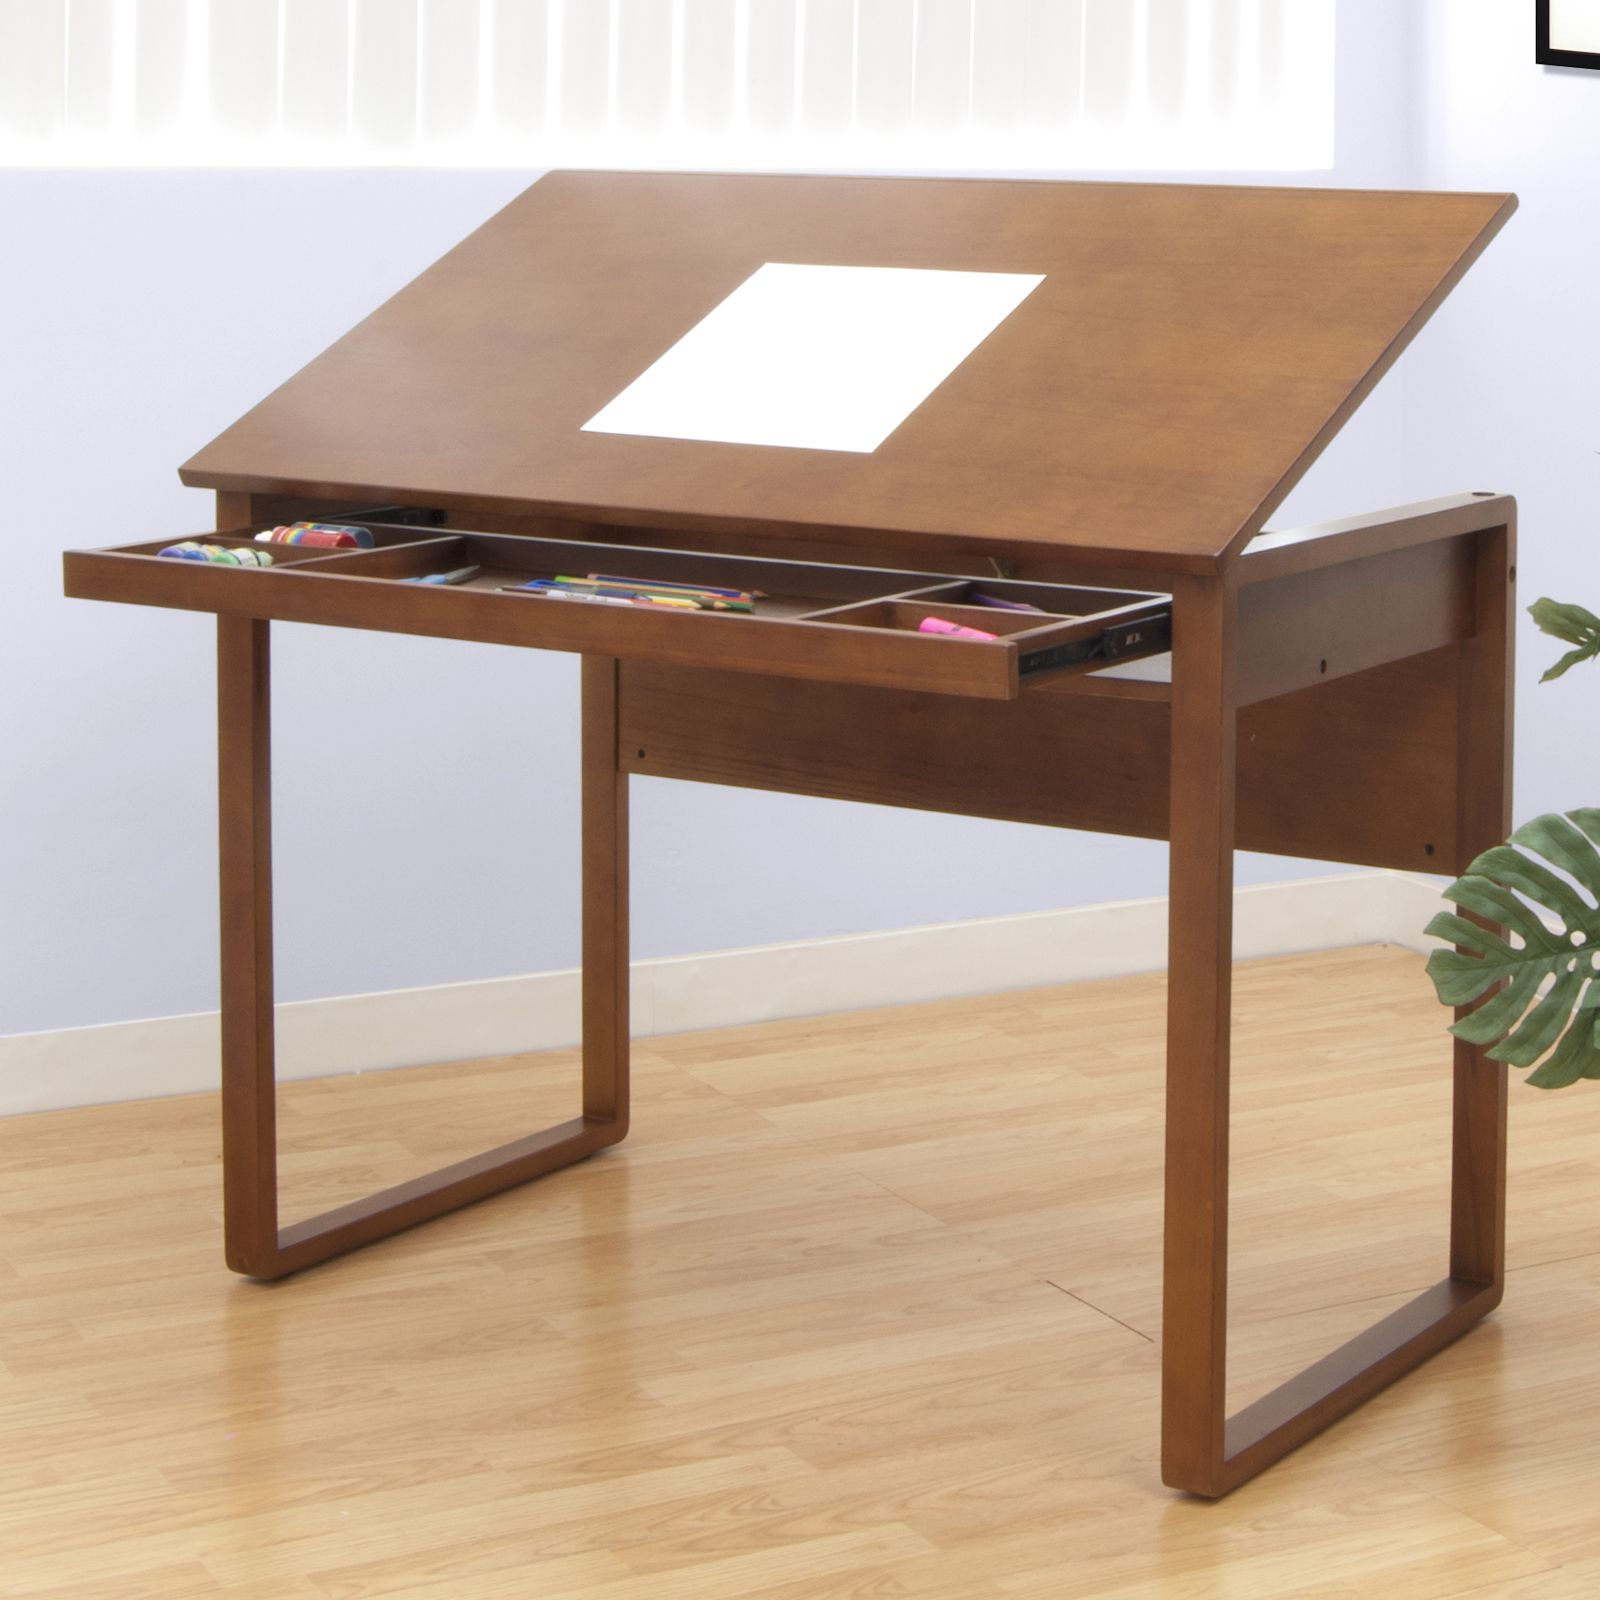 Ponderosa Wooden Drafting Table by Studio Designs - warm wood and ...